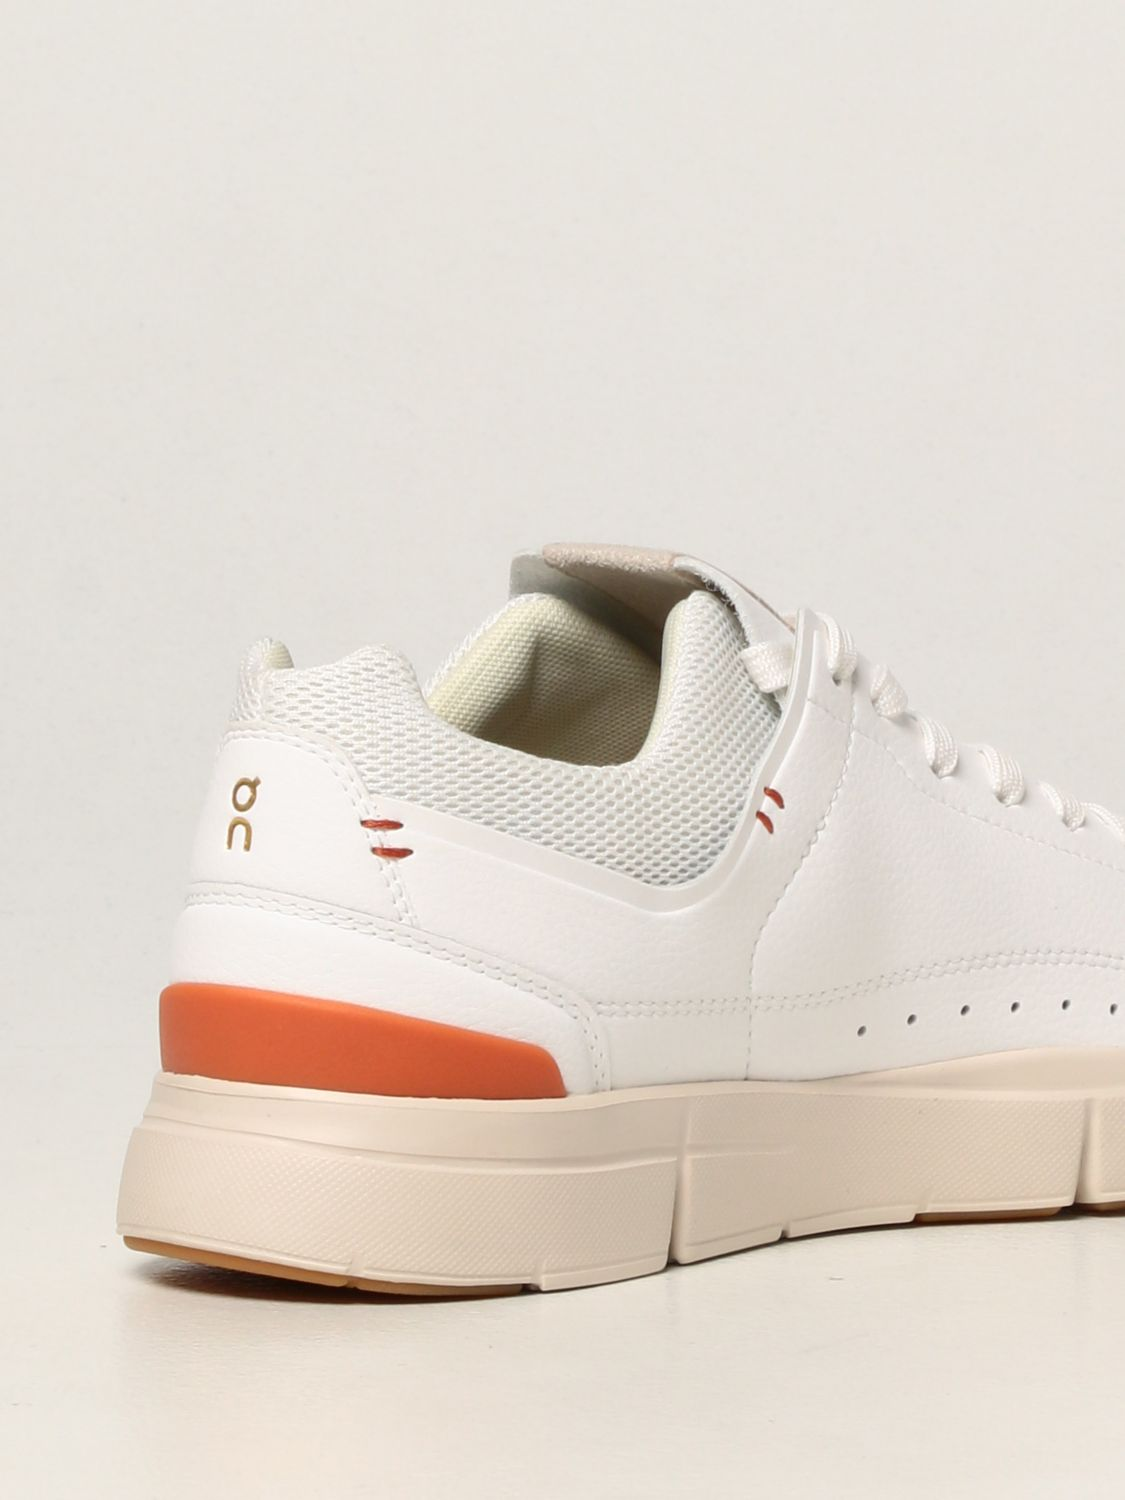 Sneakers The Roger: Sneakers Centre Court The Roger in pelle ecologica e mesh bianco 3